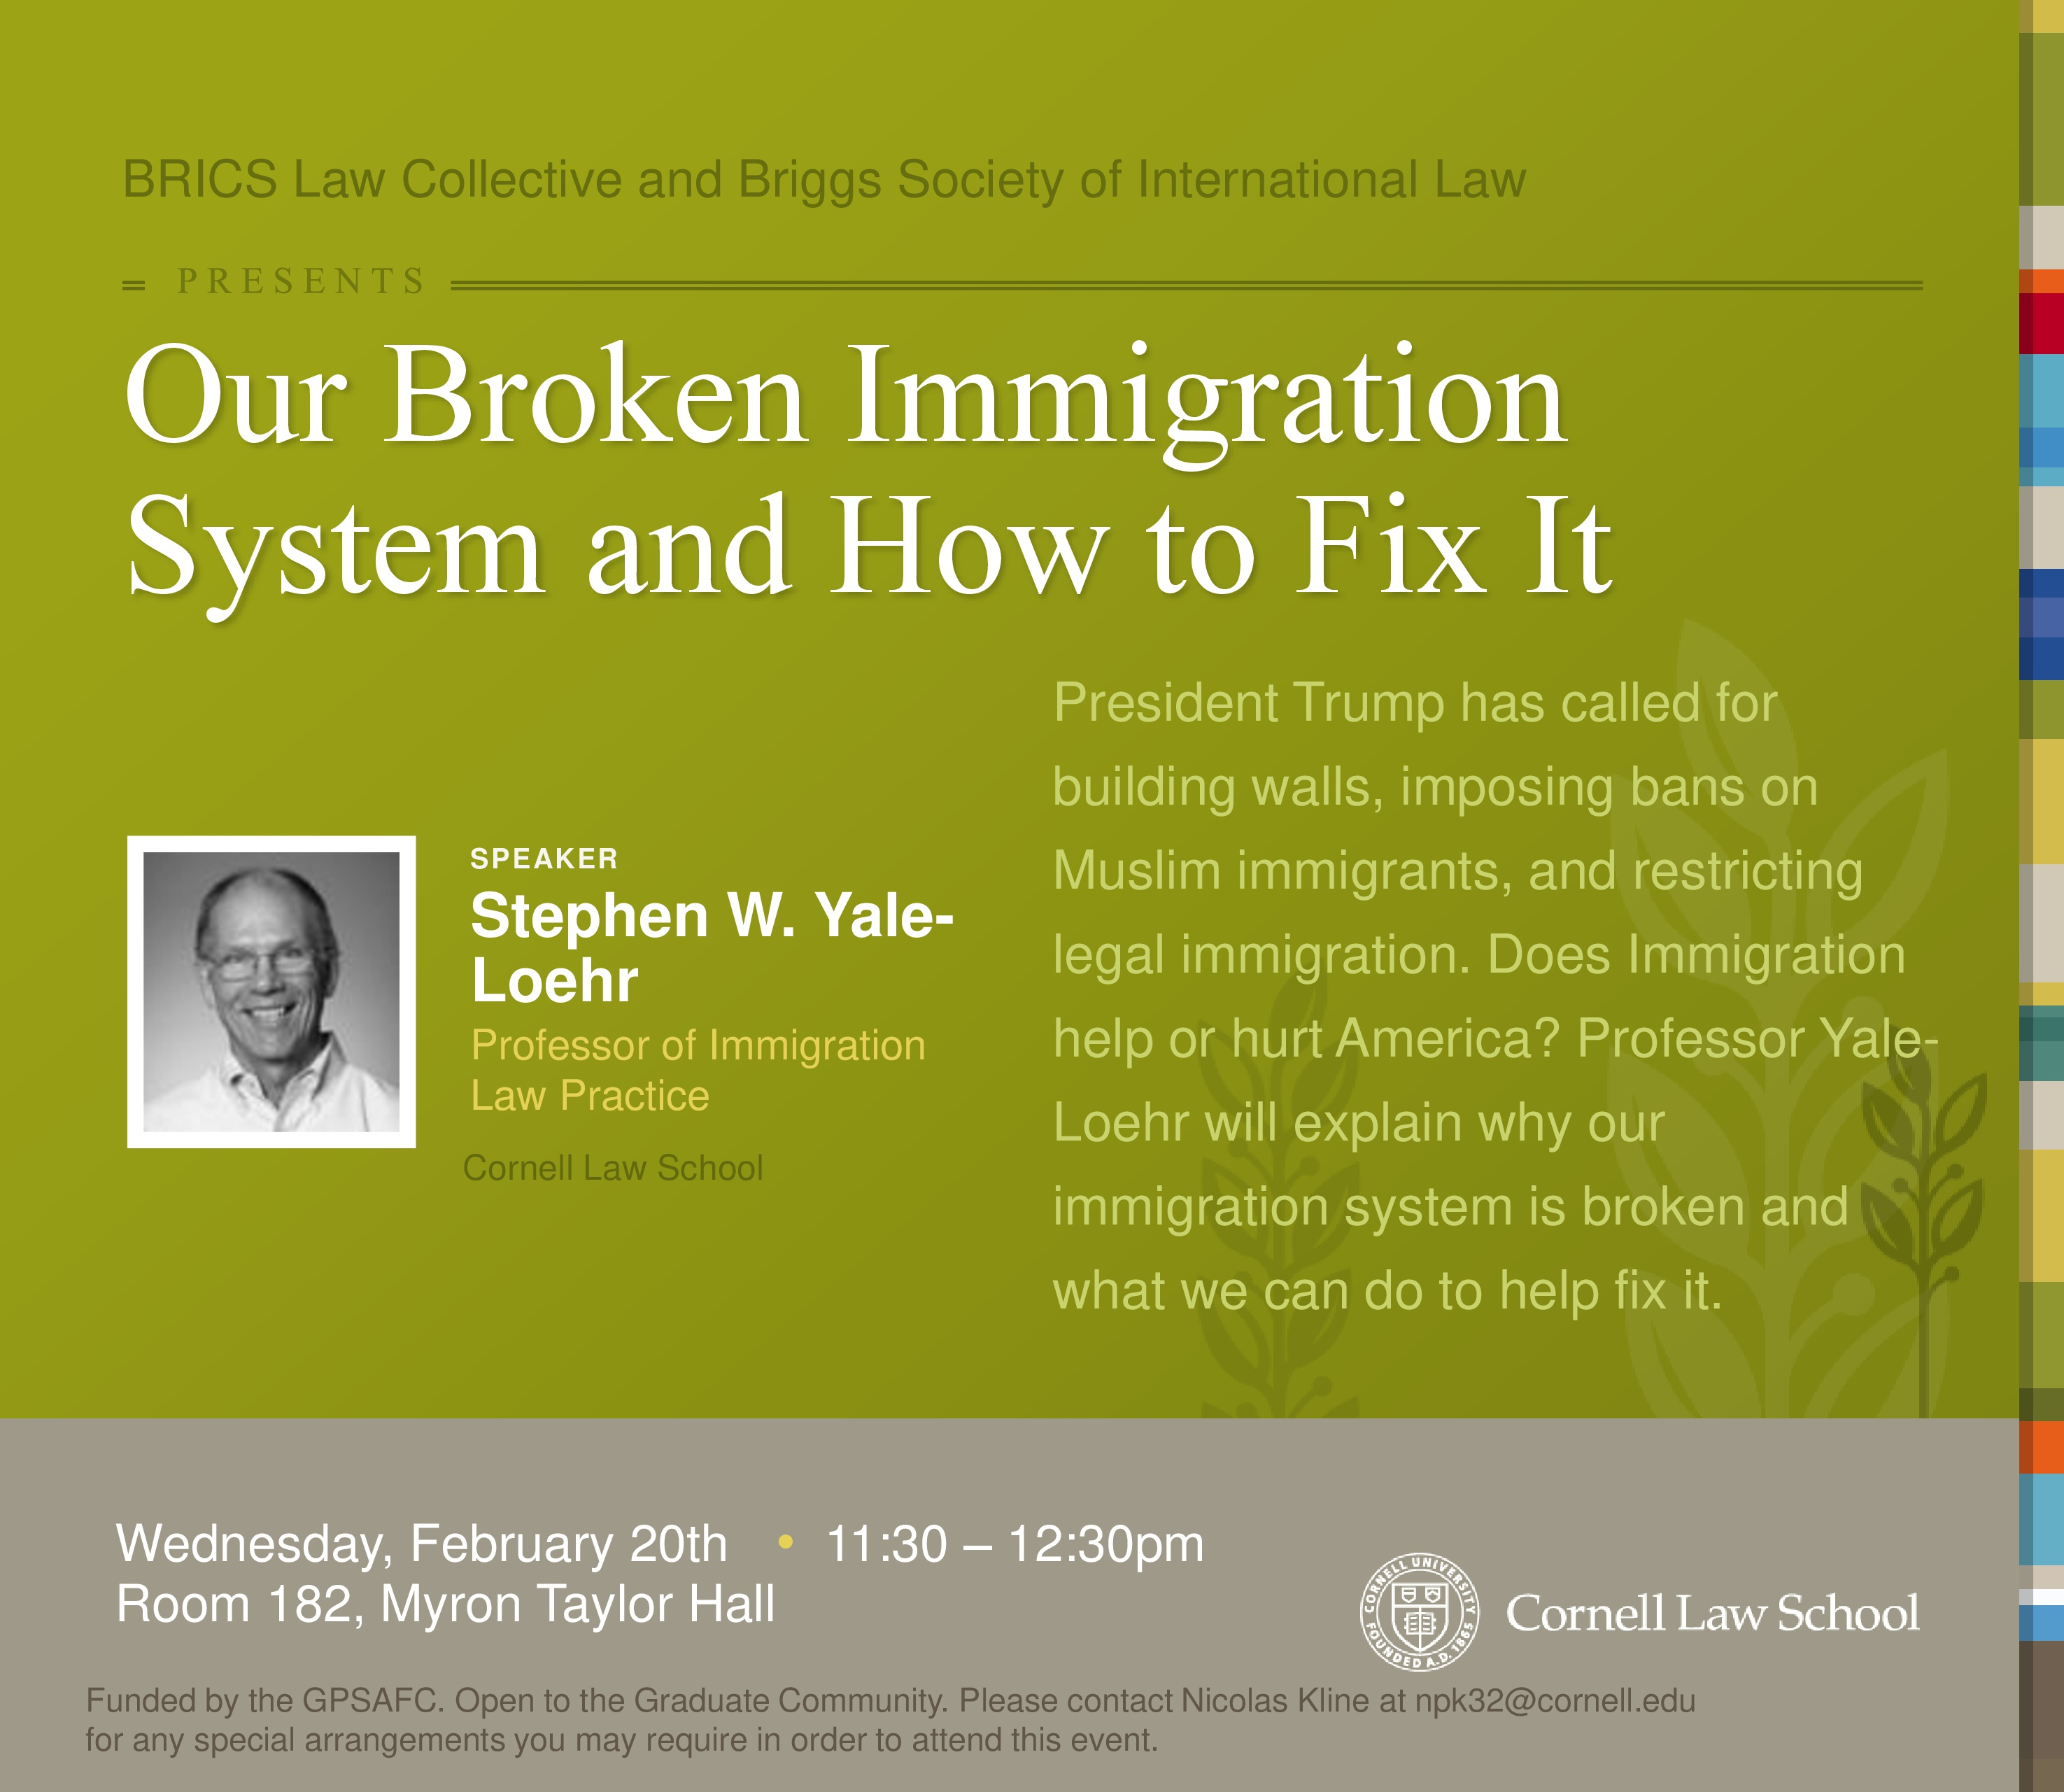 """The BRICS Law Collective and the BRIGGS Society of International Law present - """"Our Broken Immigration System and How to Fix It"""""""